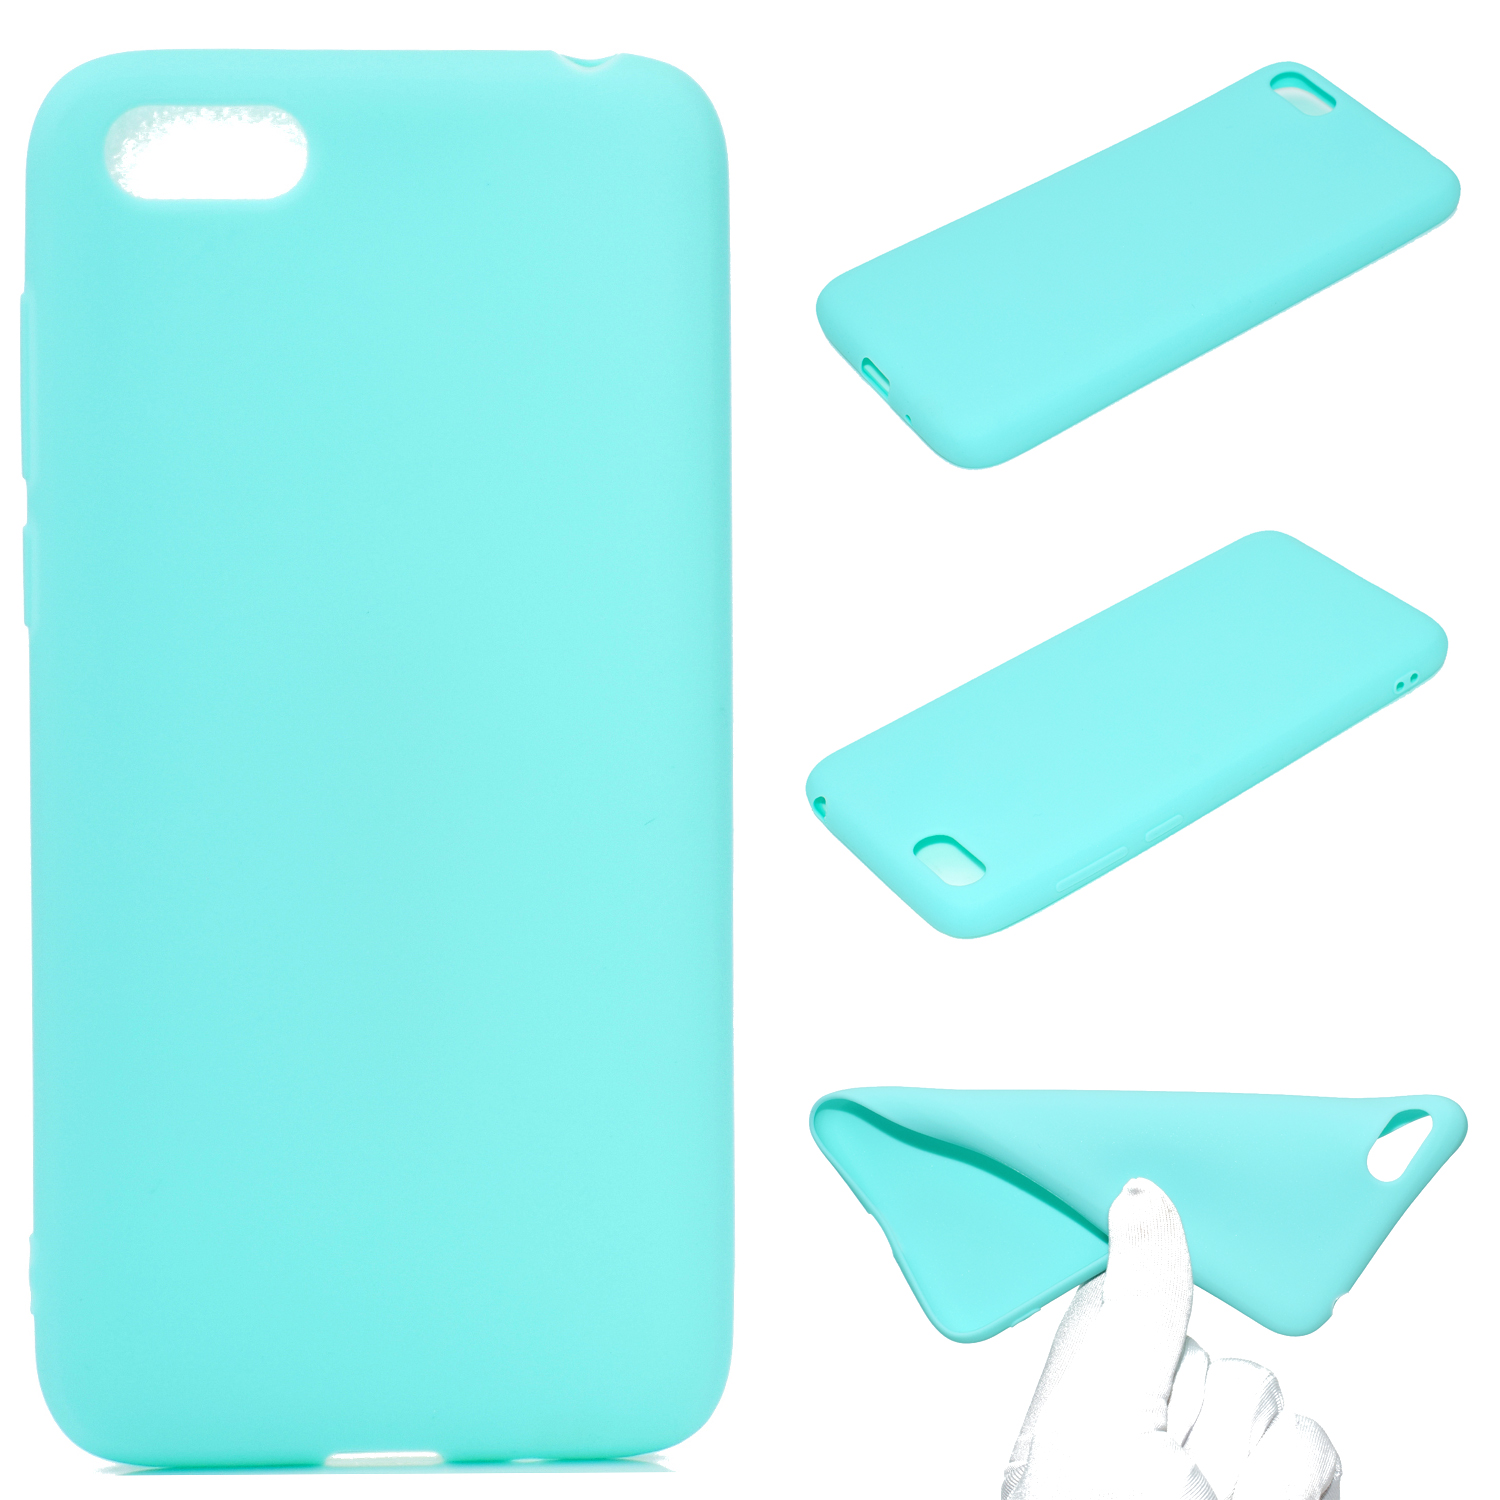 for HUAWEI Y5 2018 Cute Candy Color Matte TPU Anti-scratch Non-slip Protective Cover Back Case Light blue